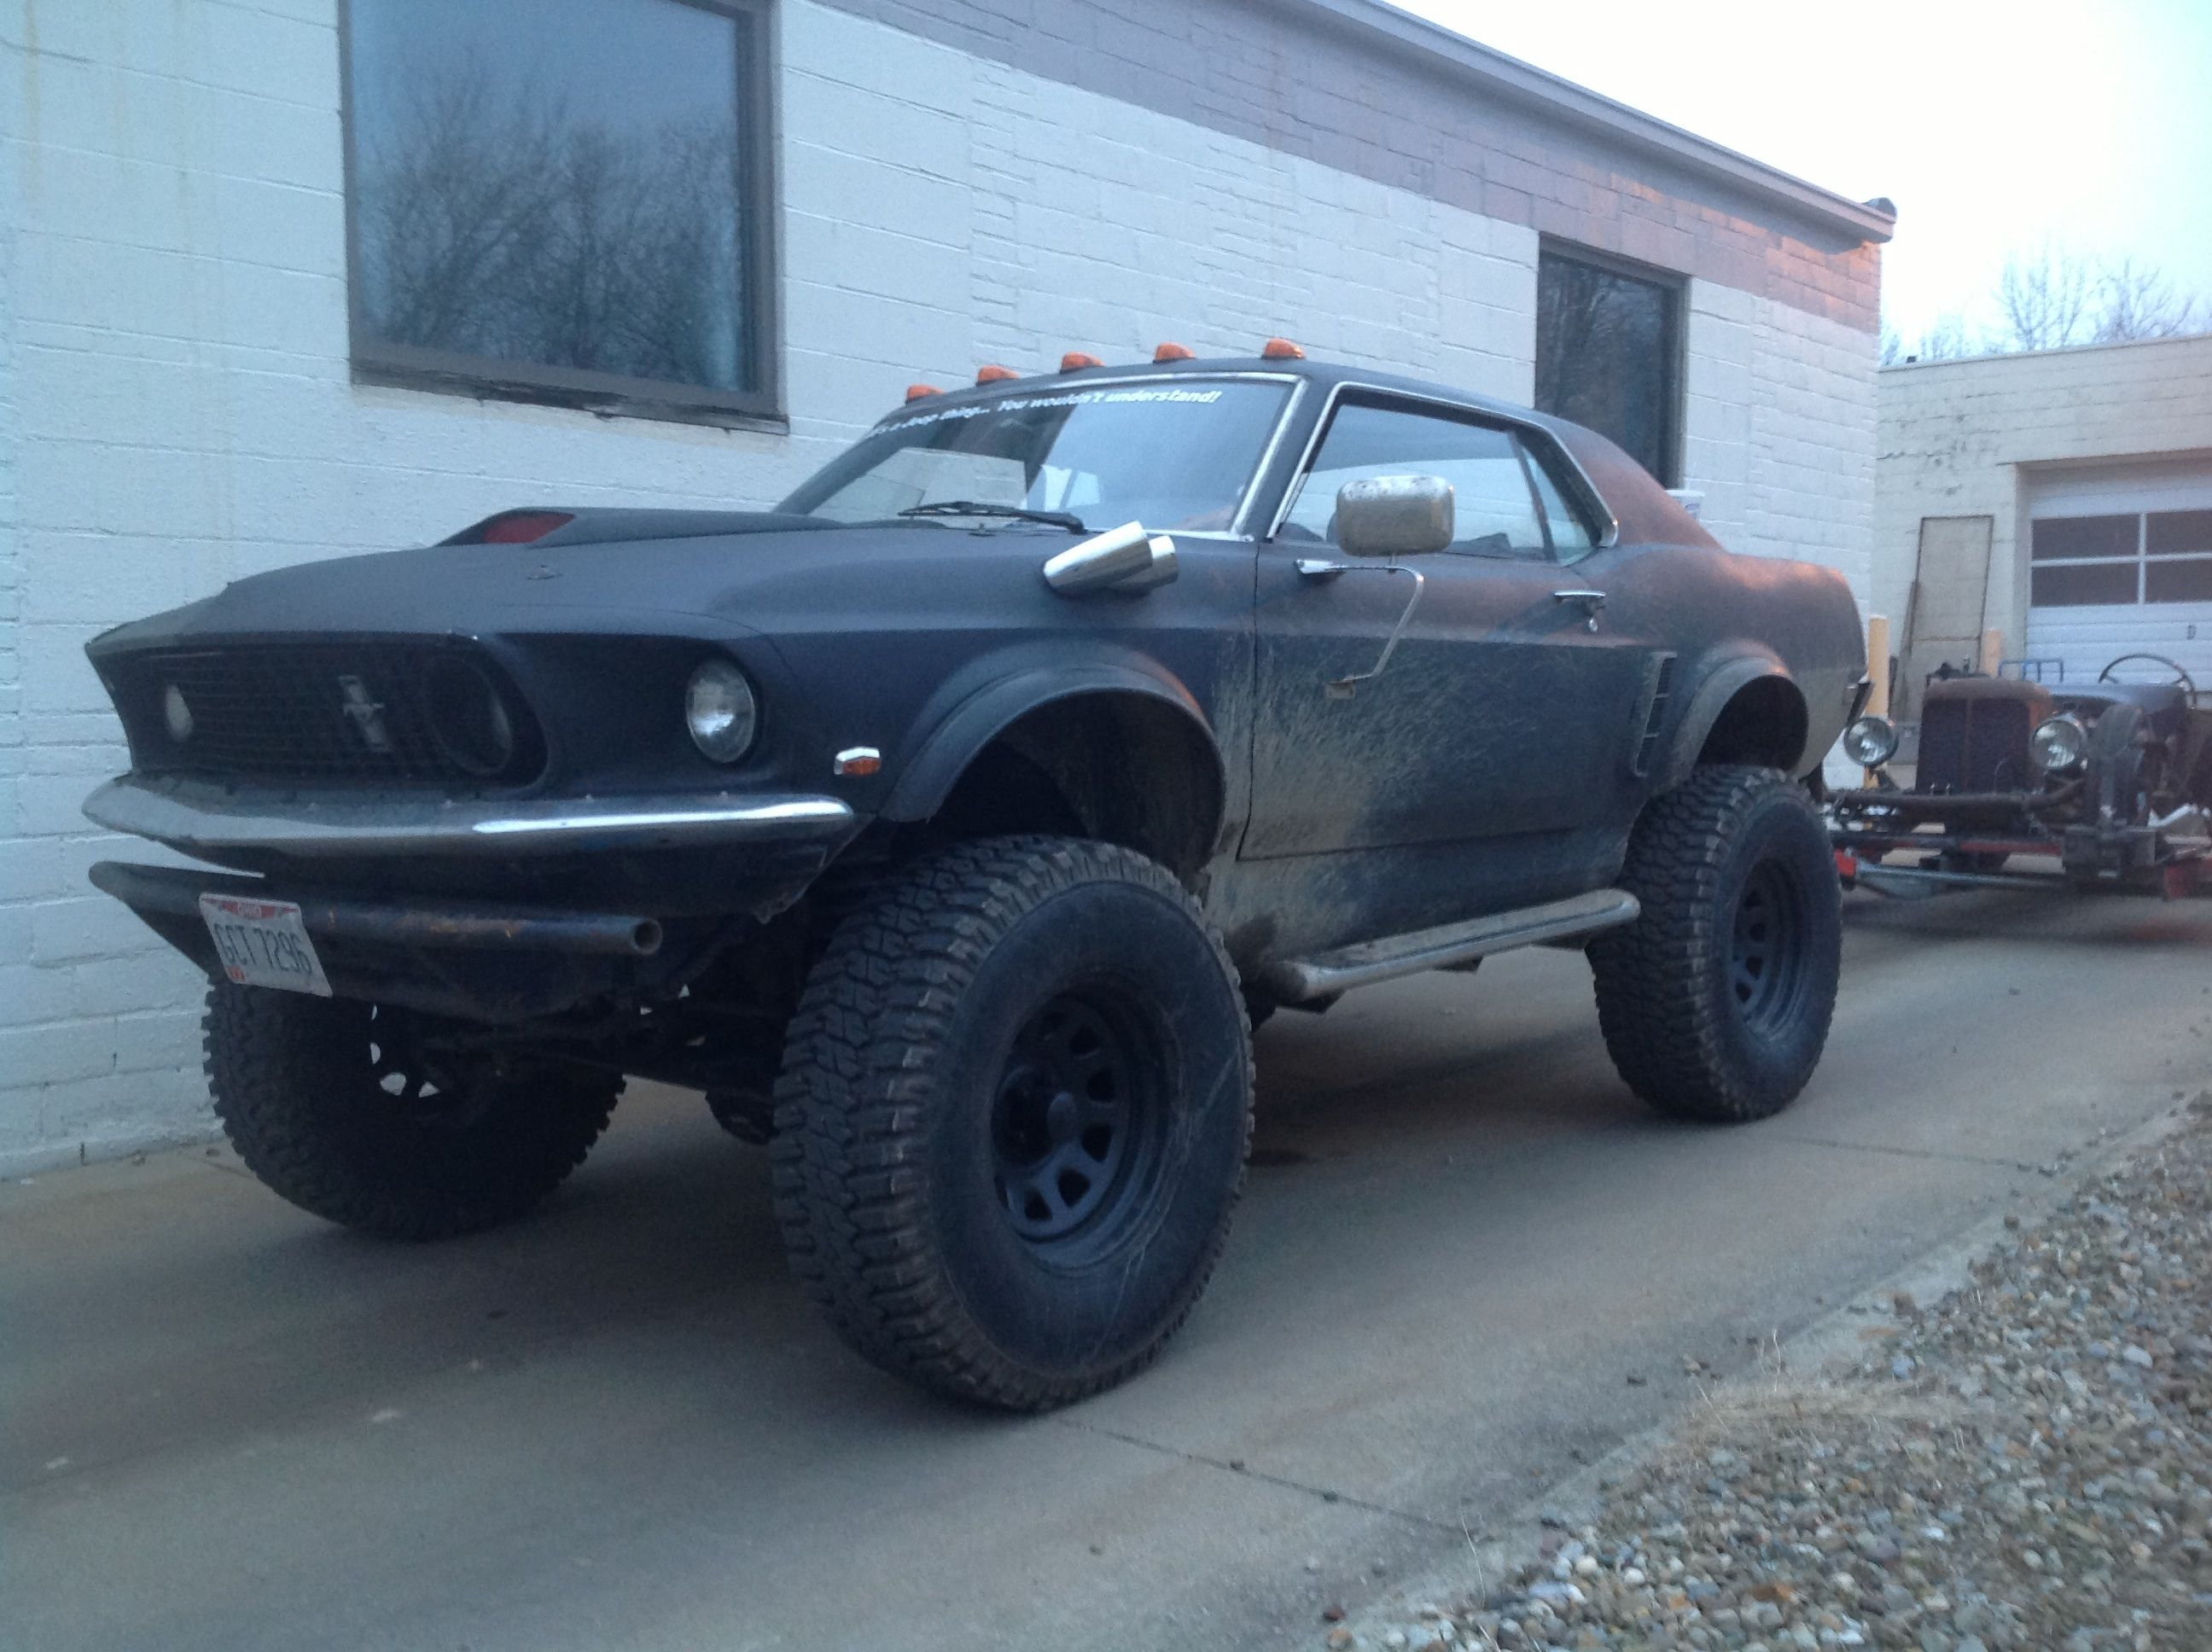 My 69 mustang 4x4 on cherokee chassis vehicle goals lifted cars